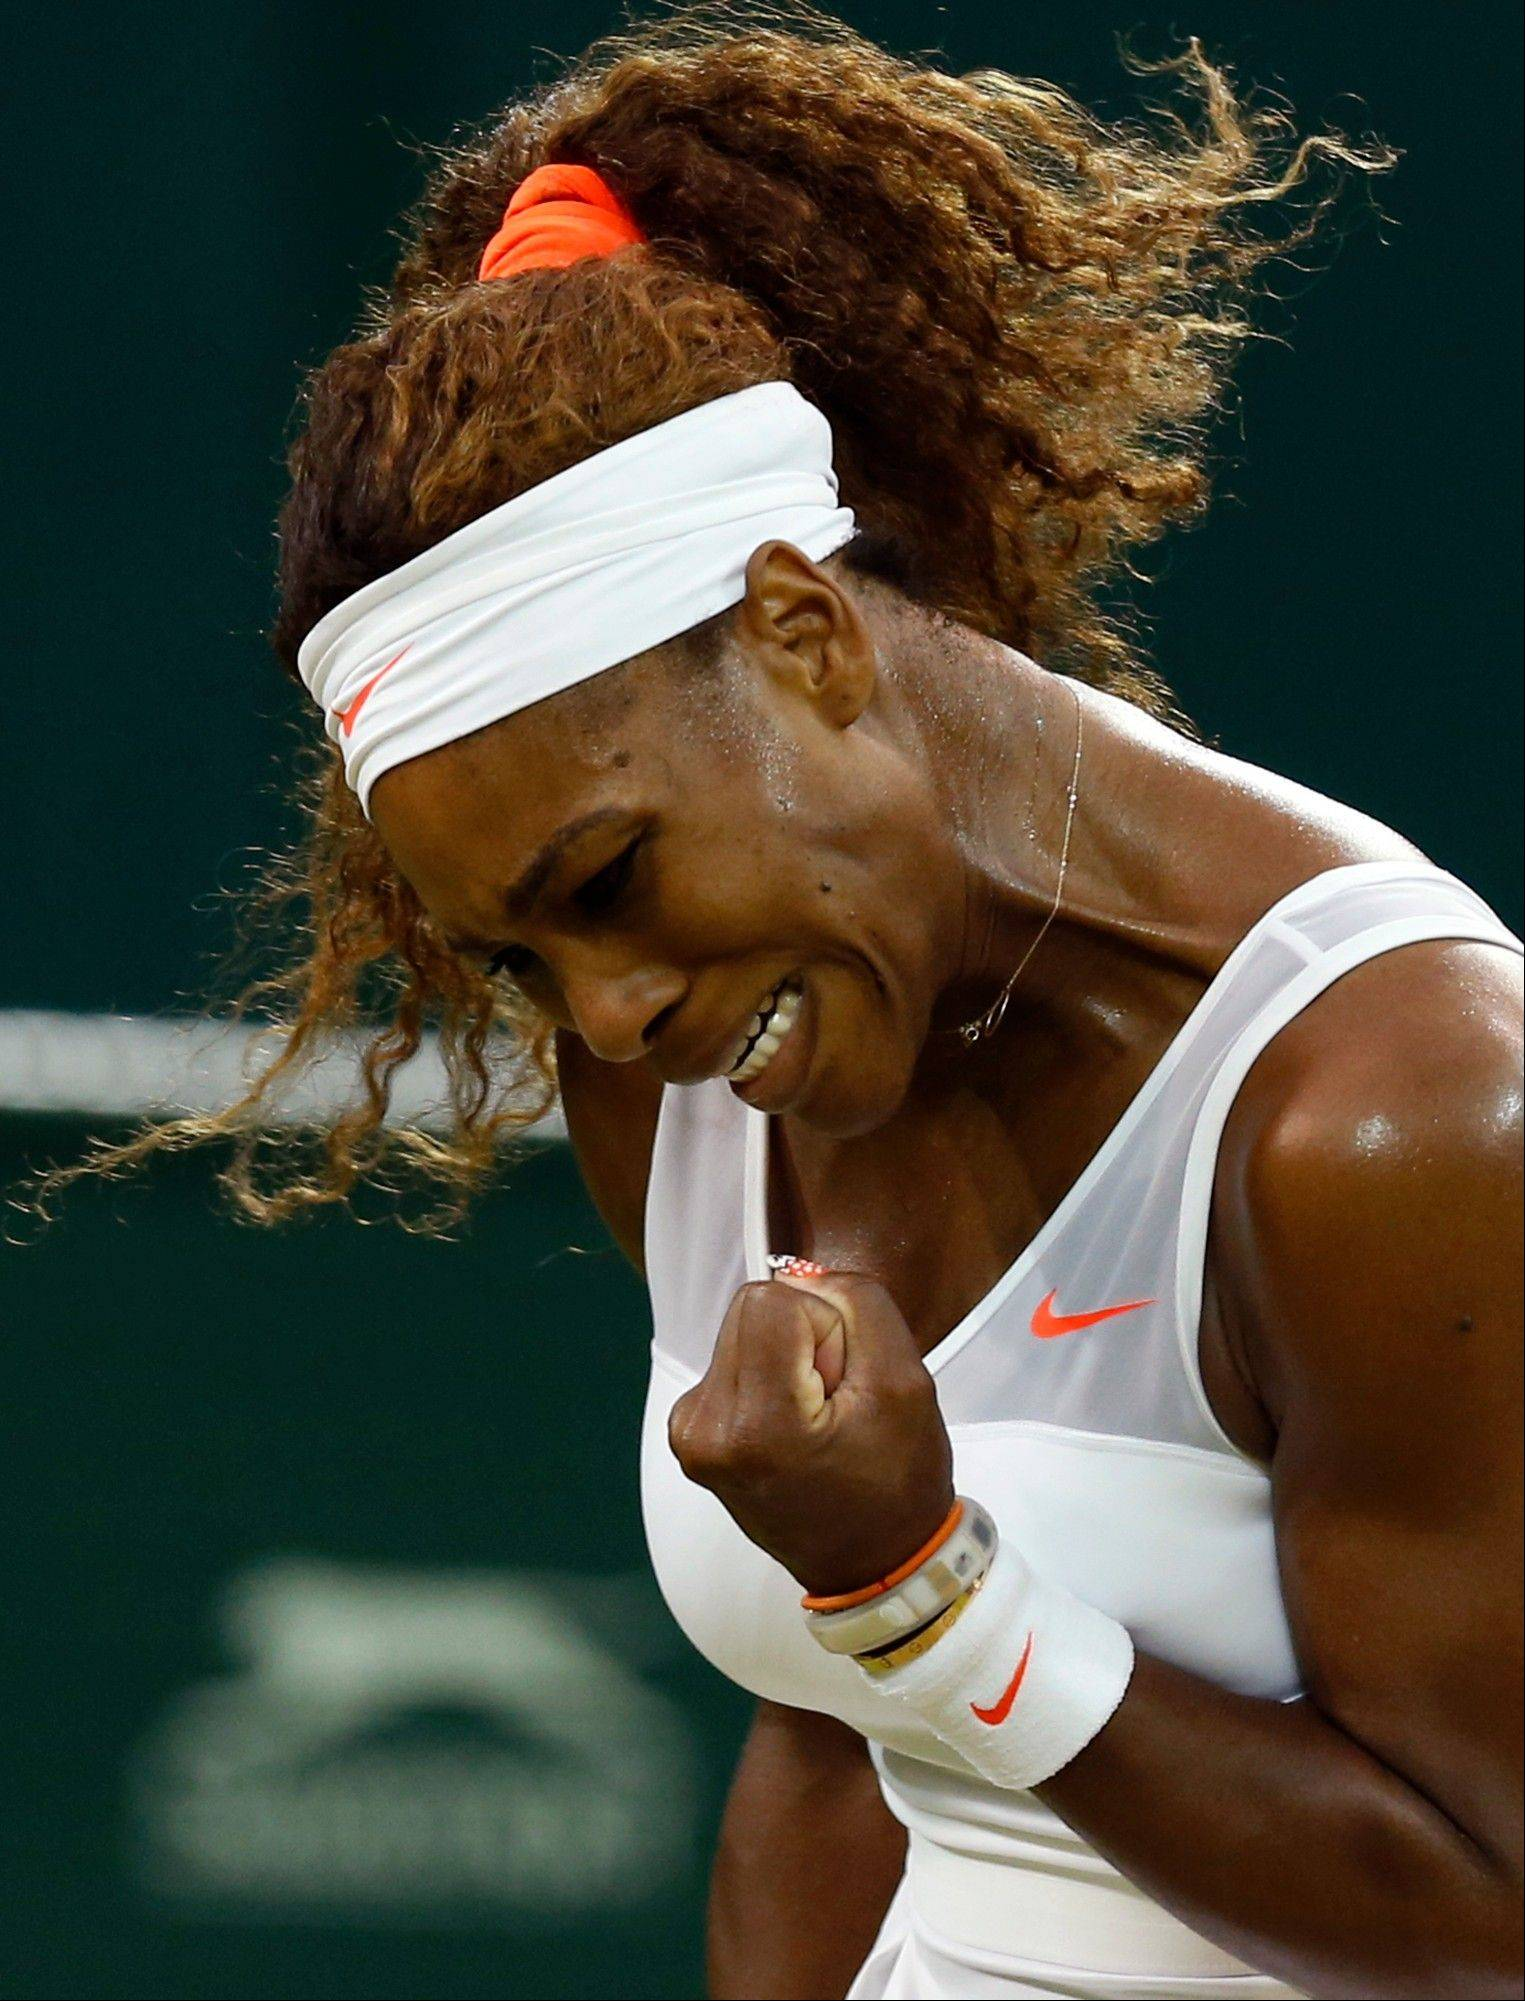 Serena Williams of the United States reacts after winning a point as she plays Kimiko Date-Krumm of Japan during their Women's singles match at the All England Lawn Tennis Championships in Wimbledon, London, Saturday, June 29, 2013.